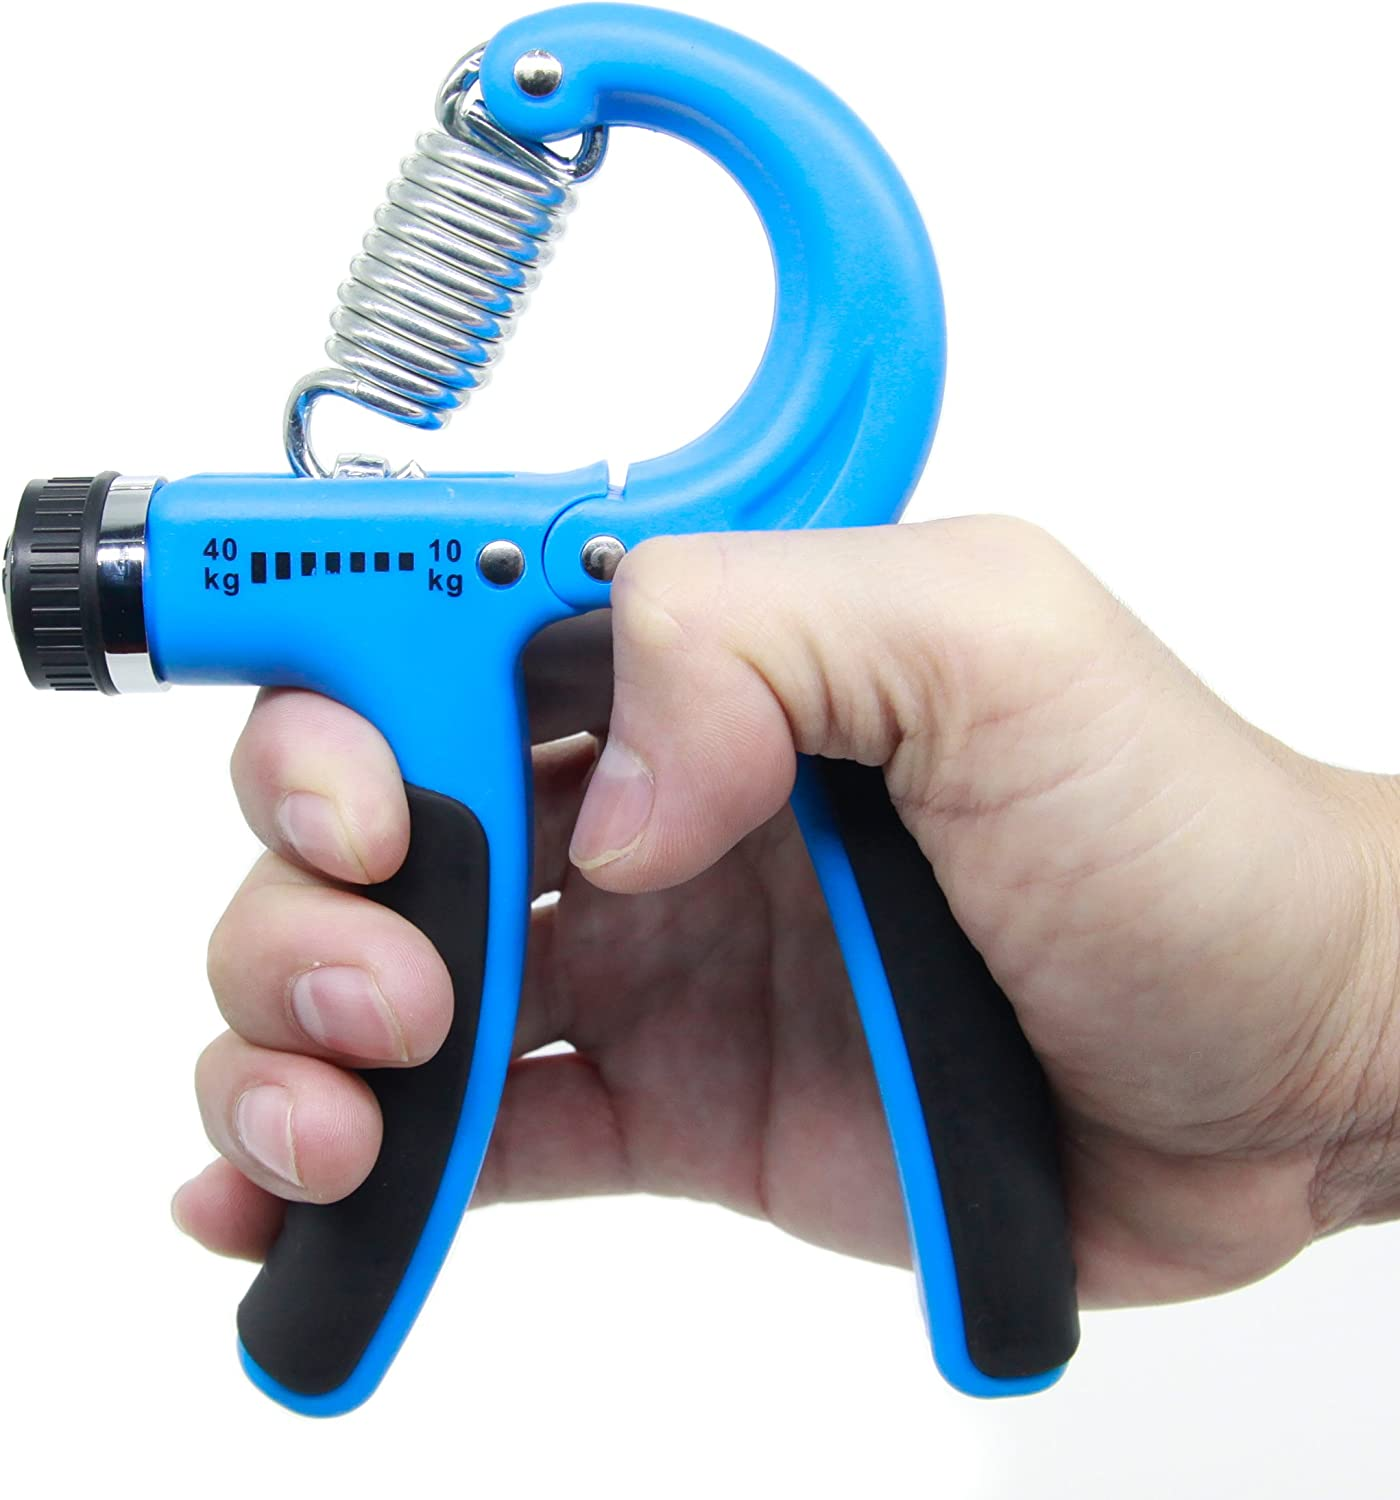 lvh Superior Hand Grip Strengthener Charlotte Mall Adjustable 22-88 Lbs Non-s Resistance